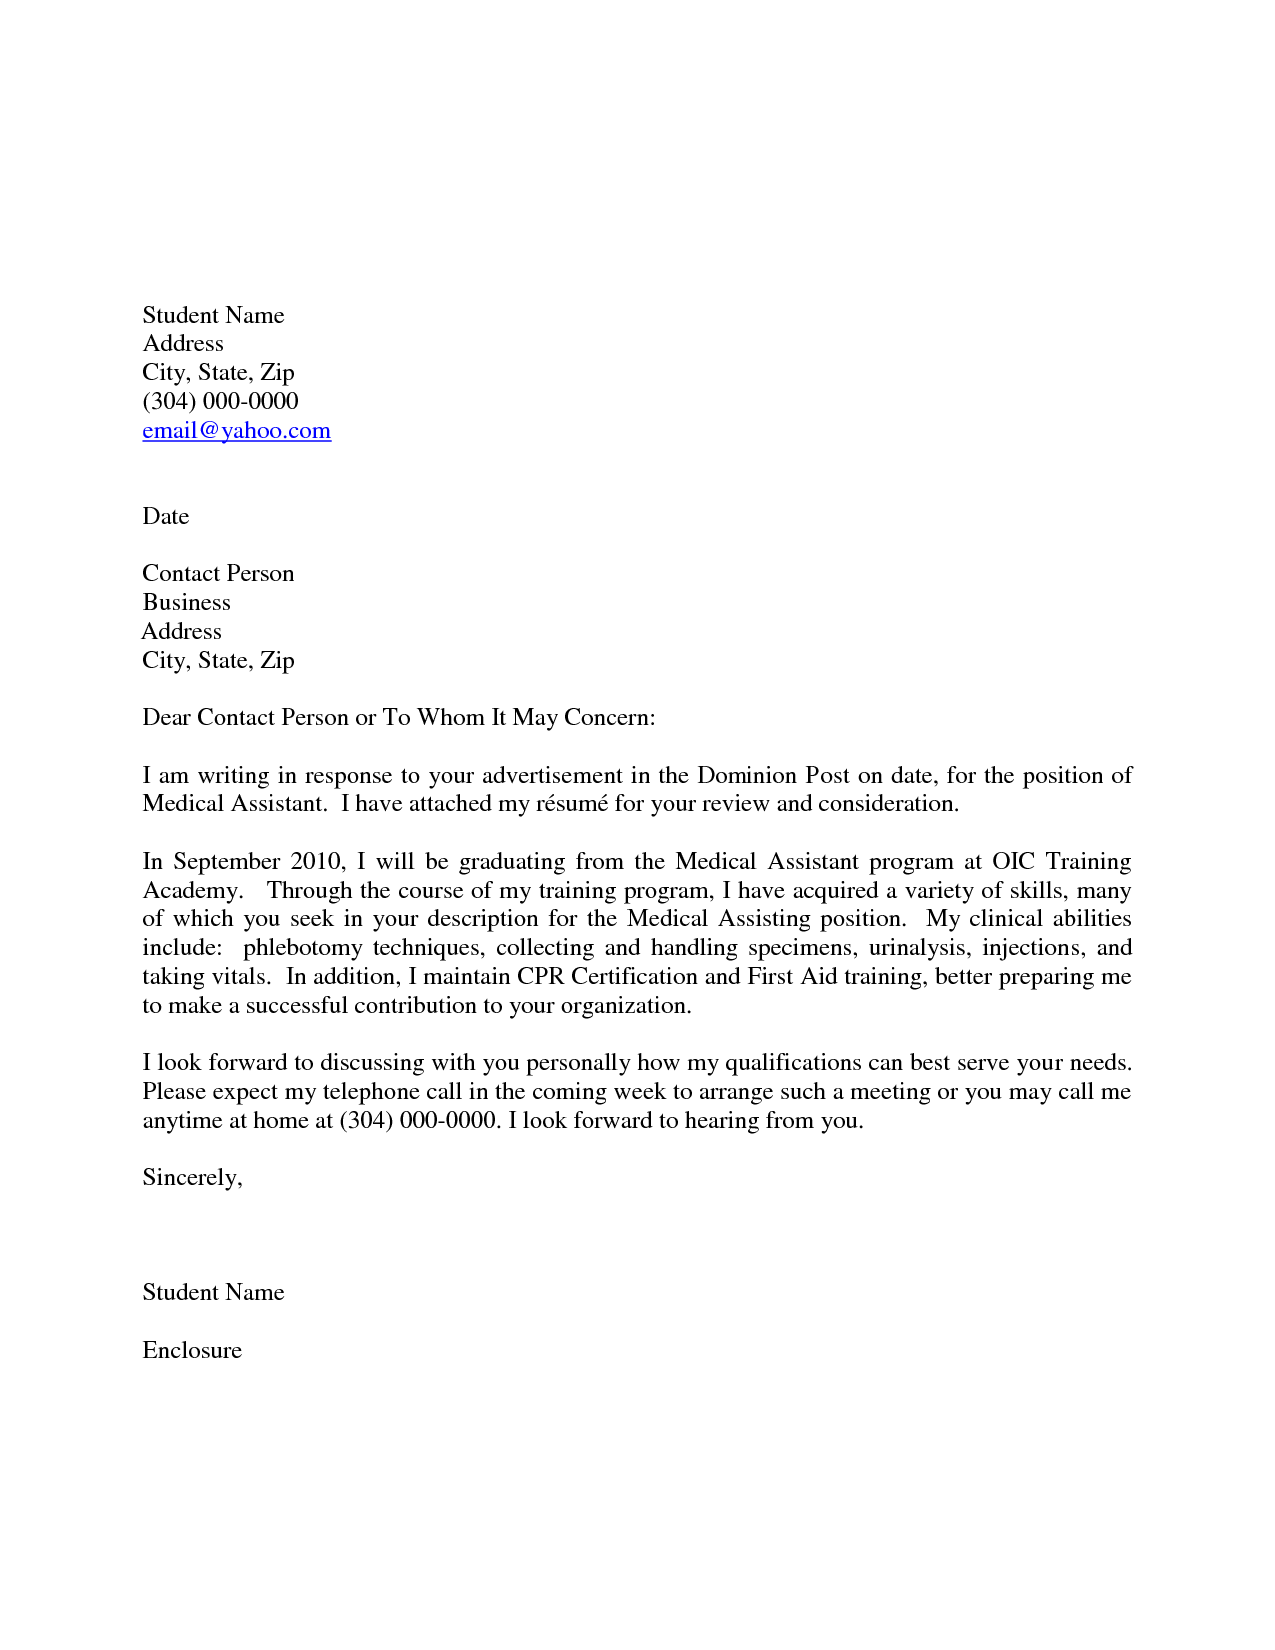 Ma Cover Letter Examples.Letter Medical Cover Letter